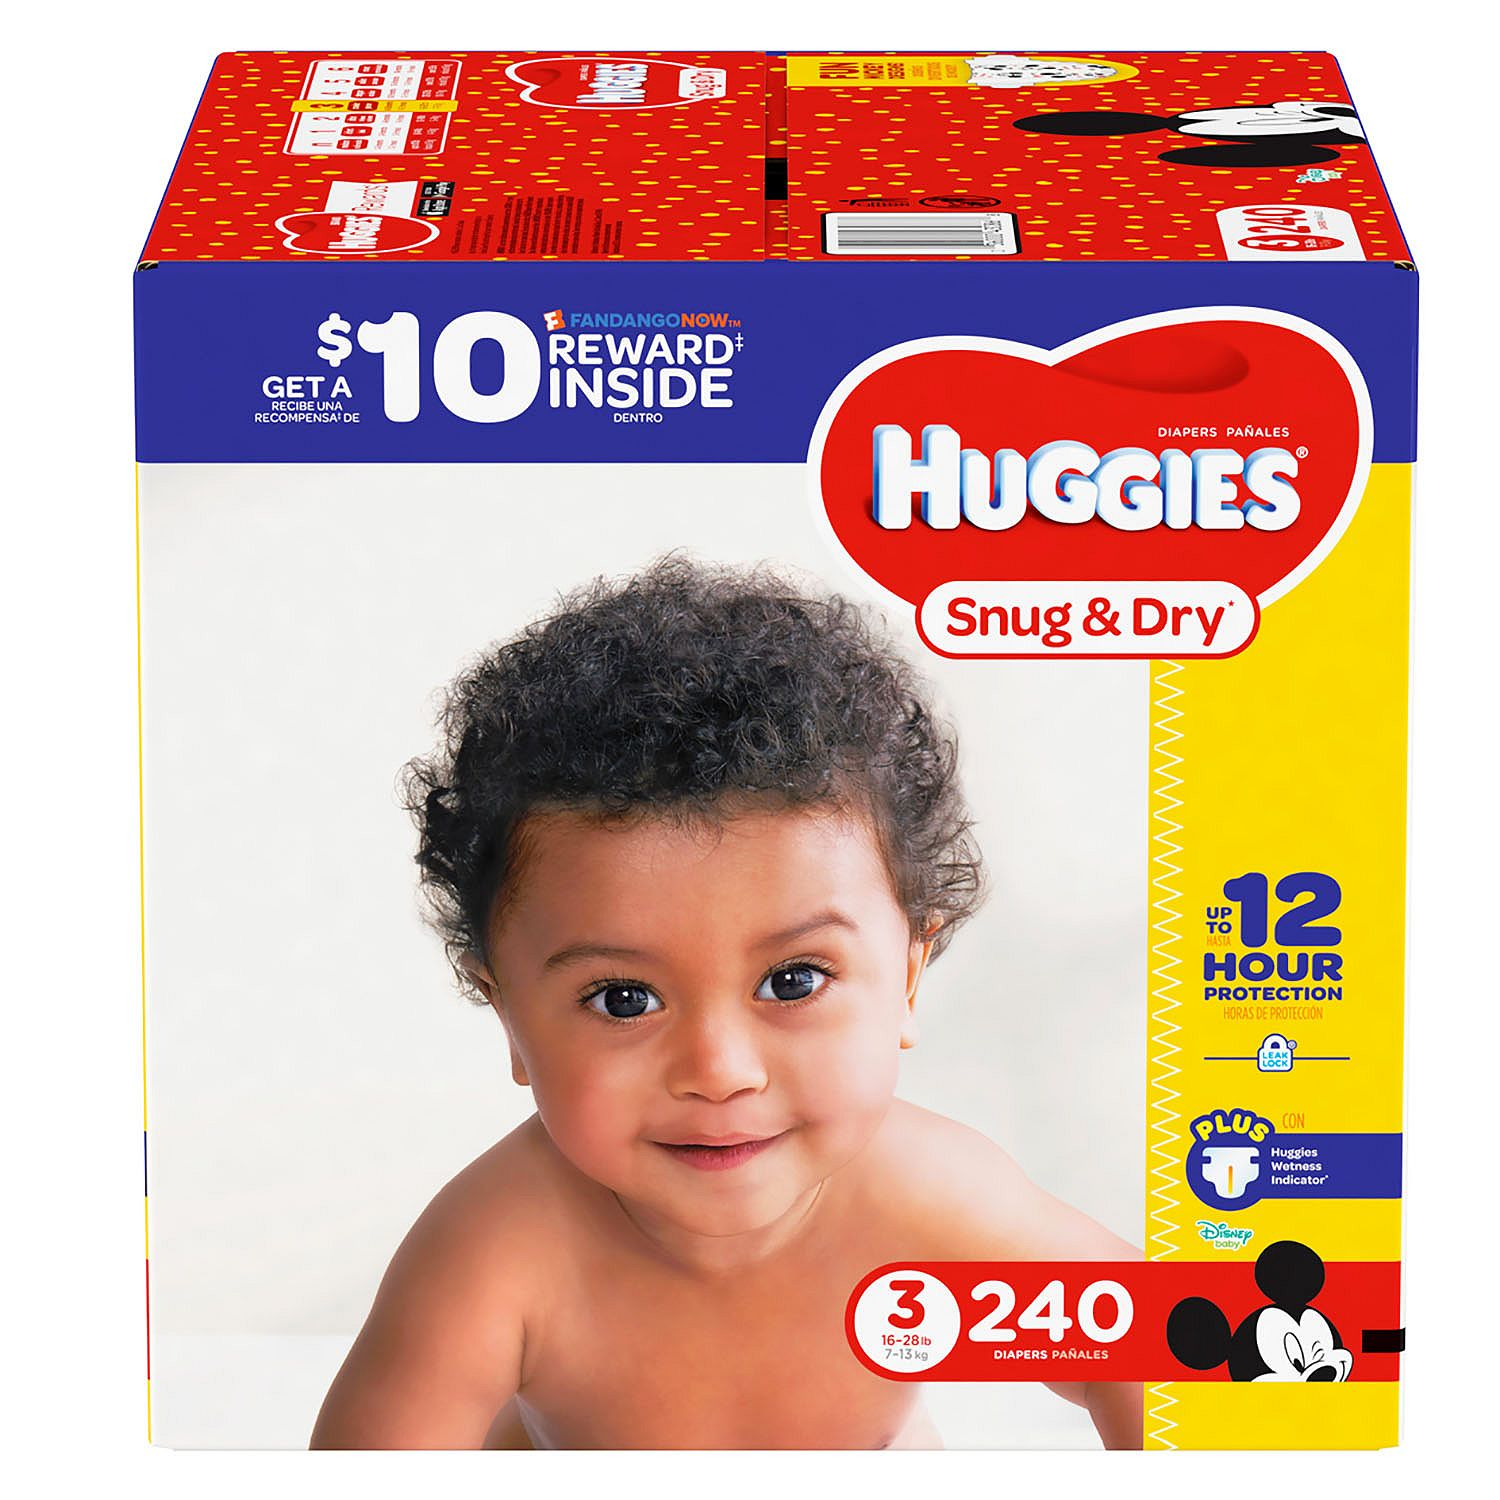 Huggies Snug & Dry Diapers Size 3 - 240 ct. ( Weight 16- 28 lbs.) - Bulk Qty, Free Shipping - Comfortable, Soft, No leaking & Good nite Diapers